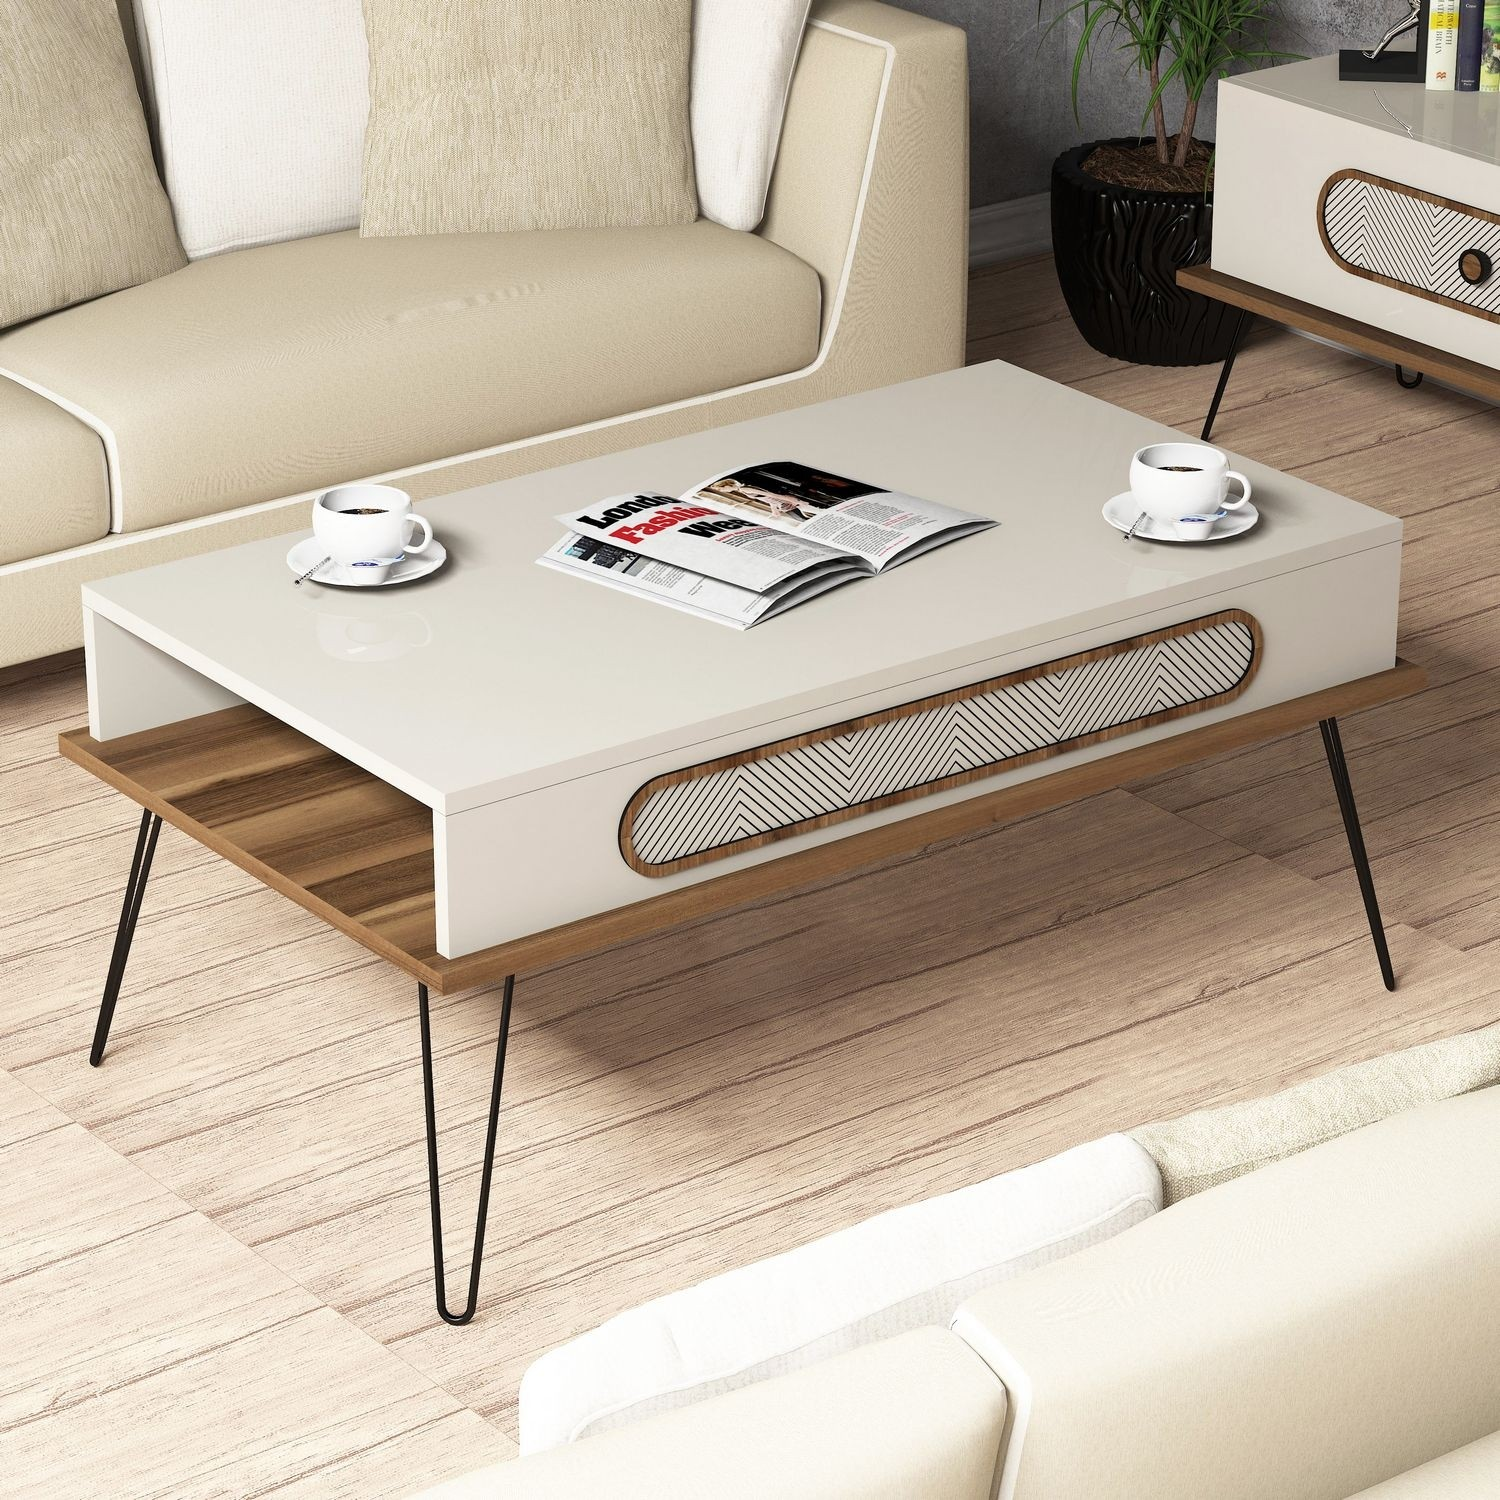 - Dose Of Modern Ekol – Cream Coffee Table 845HCT2816 – Cream